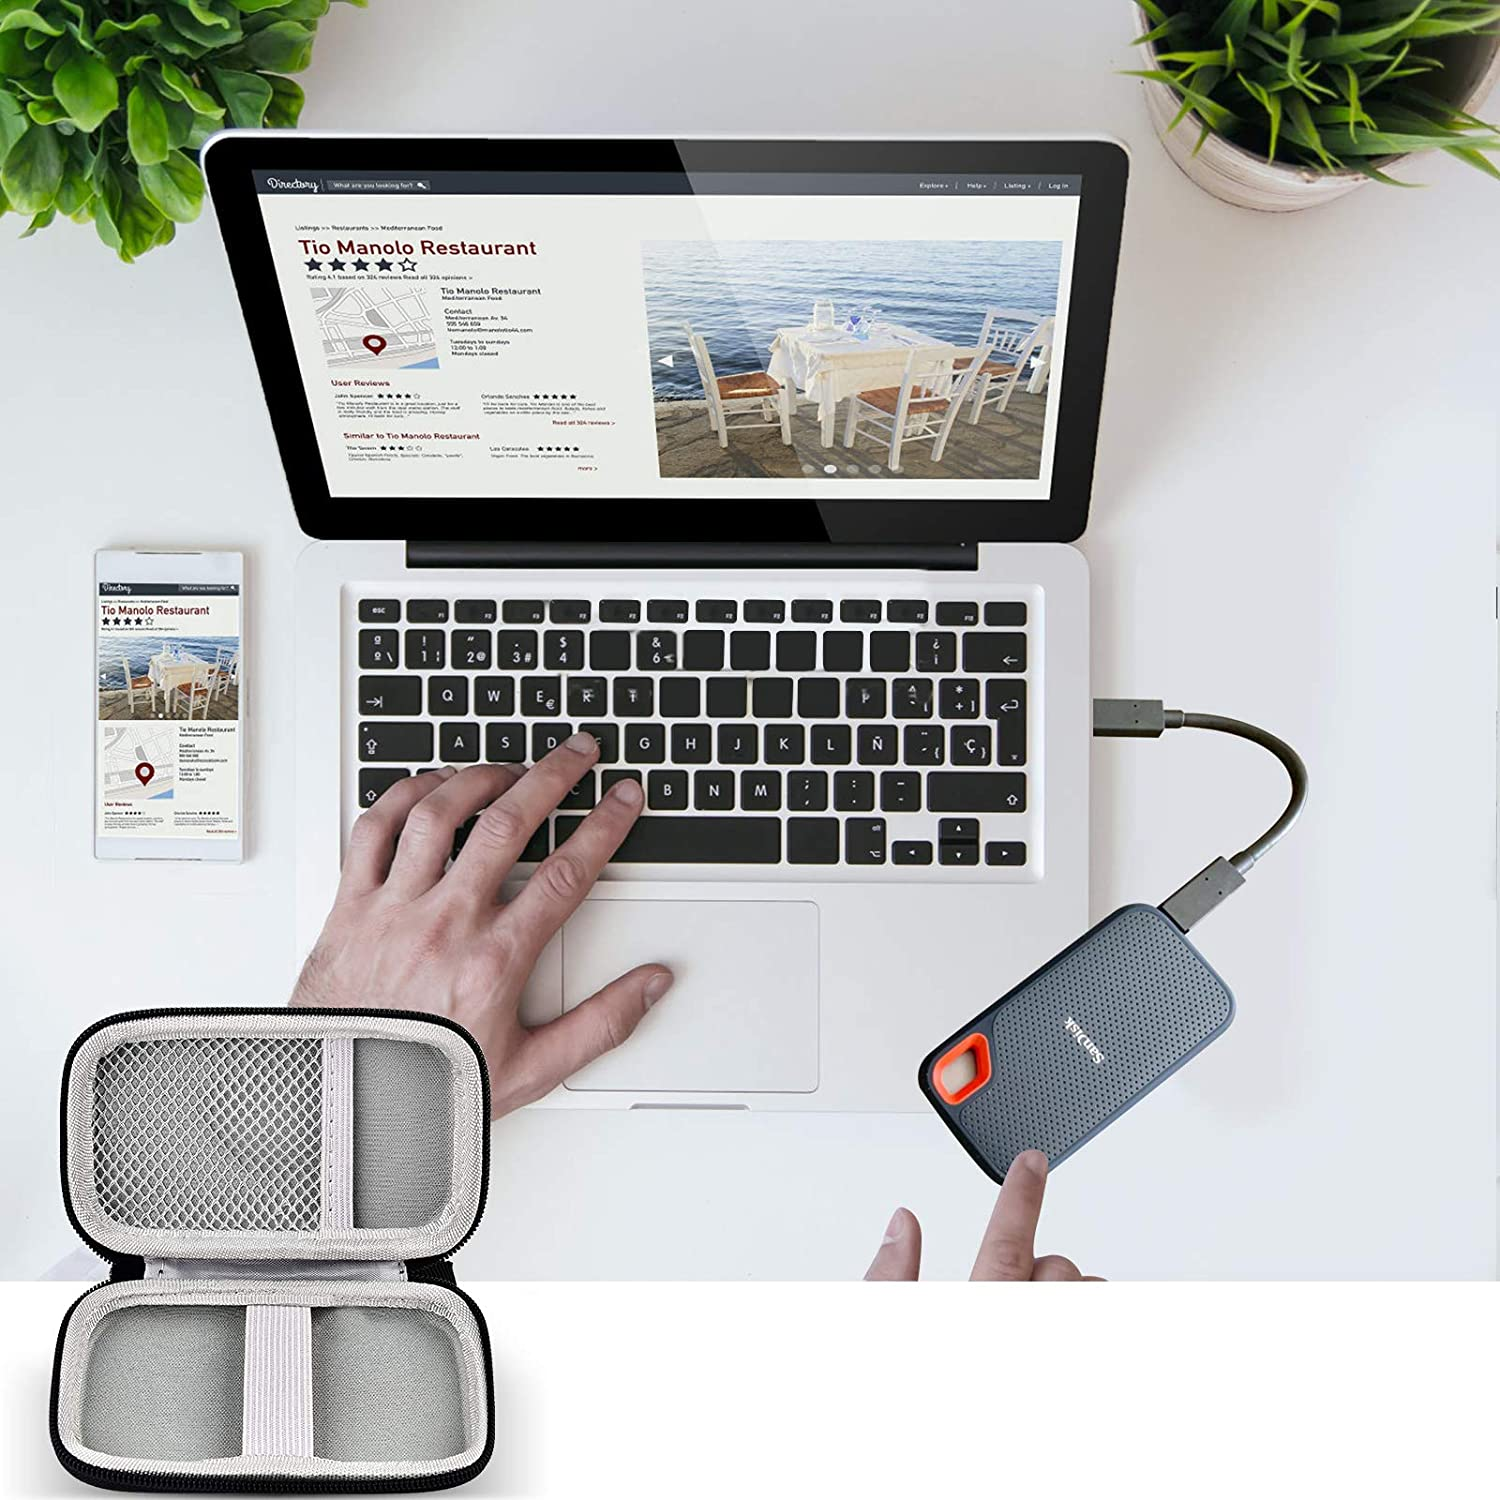 Box Only USB 3.2 Gen 2 Carrying Travel Holder for USB Cables. Hard Case Compatible with SanDisk 500GB// 1TB// 2TB Extreme Portable SSD USB-C Up to 1050MB//s External Solid State Drive